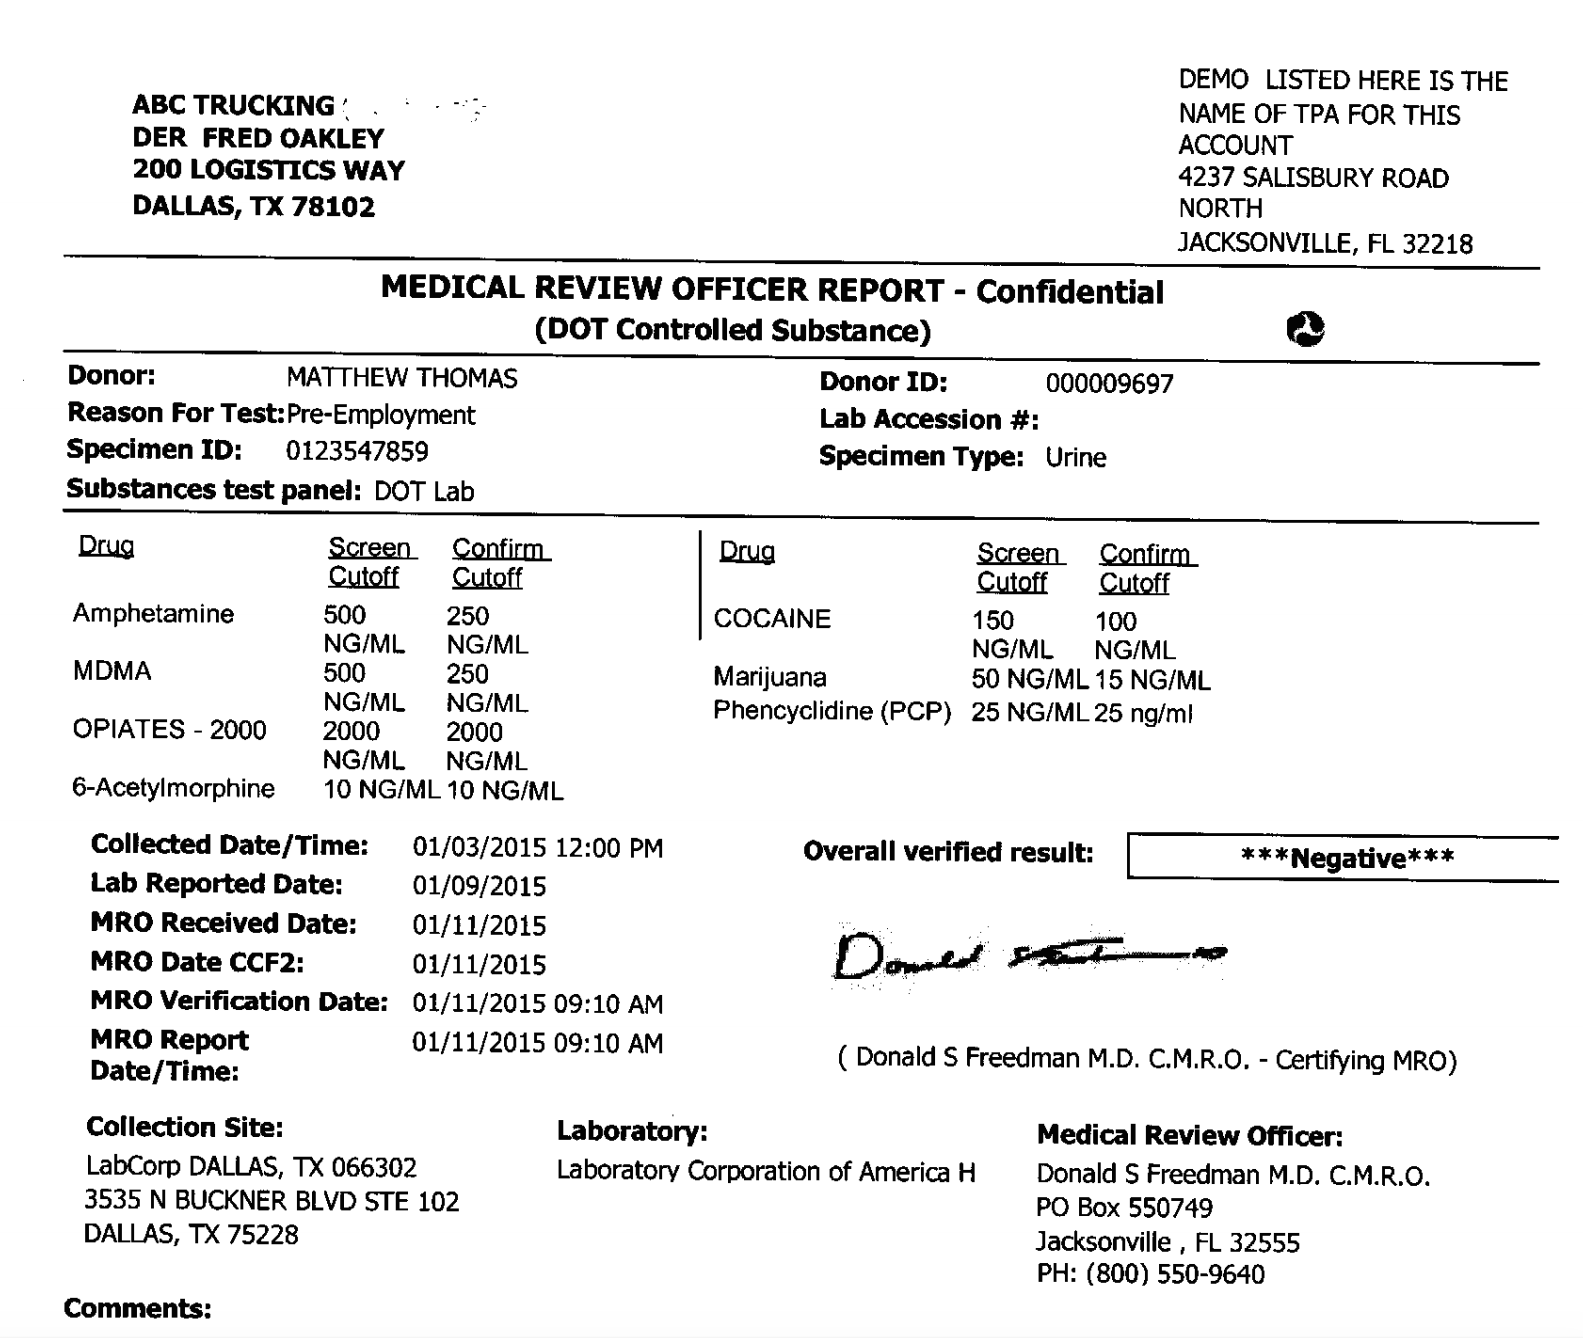 American Medical Review Officer Drug Testing Example Result